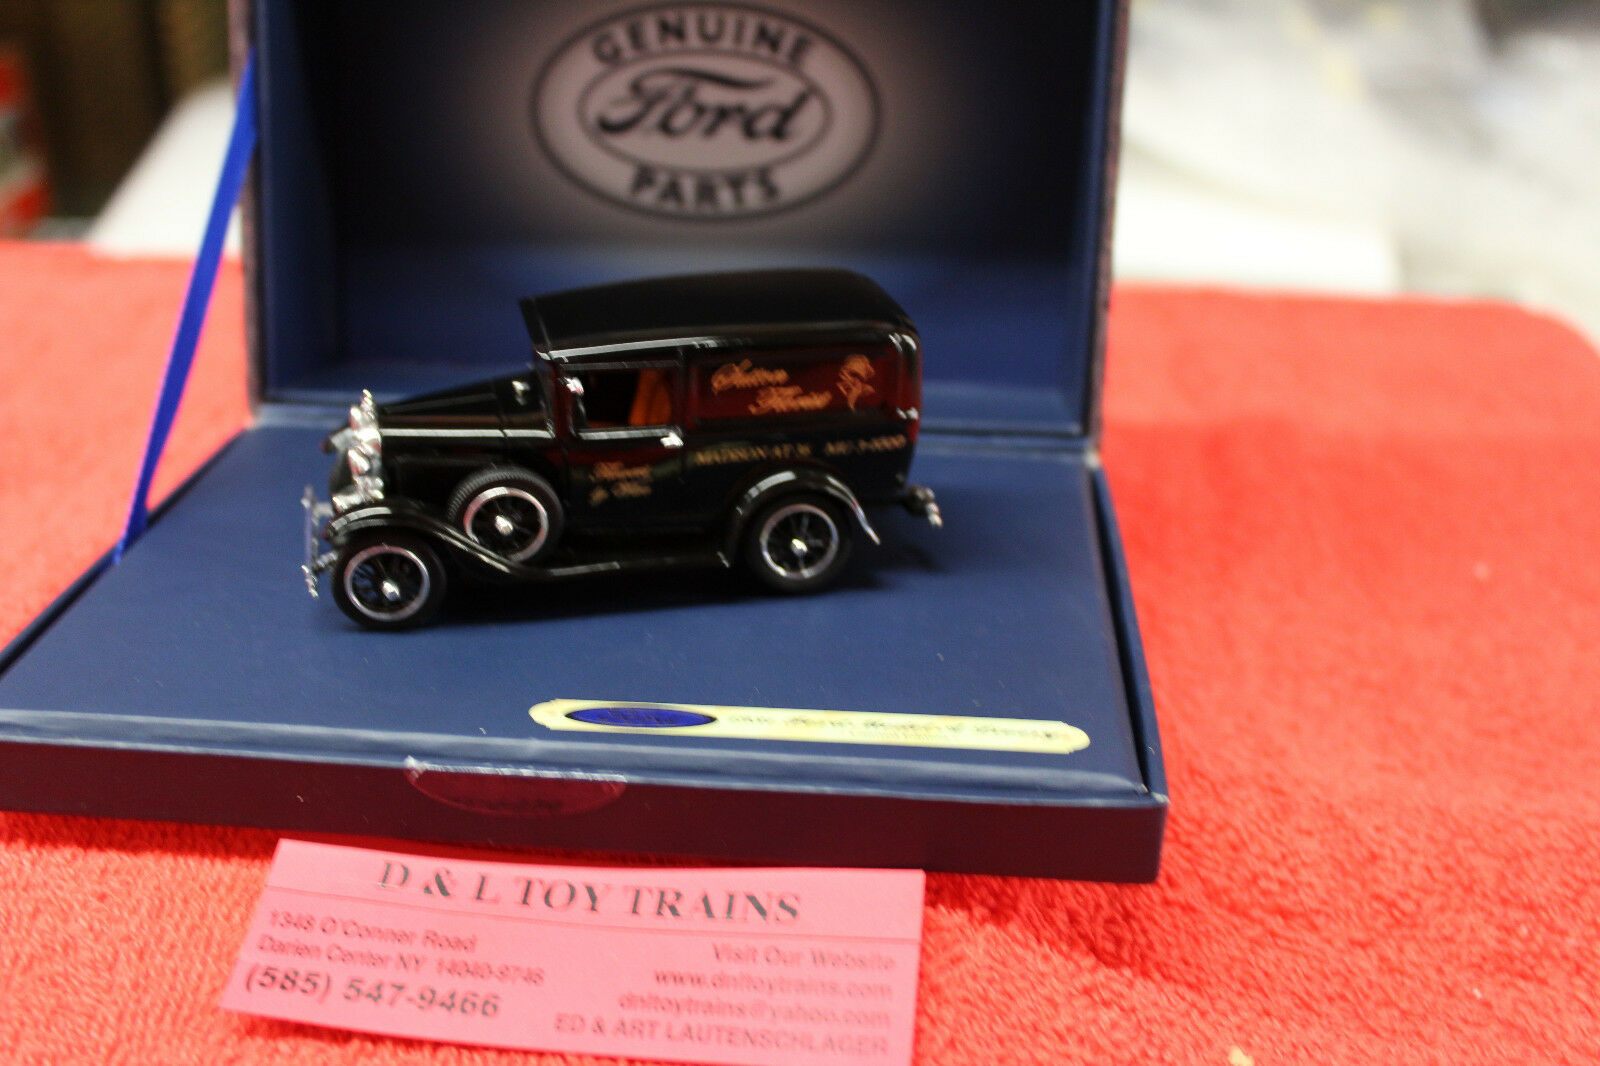 439 1931 Ford Sutton Florist Model A Car  NEW IN BOX